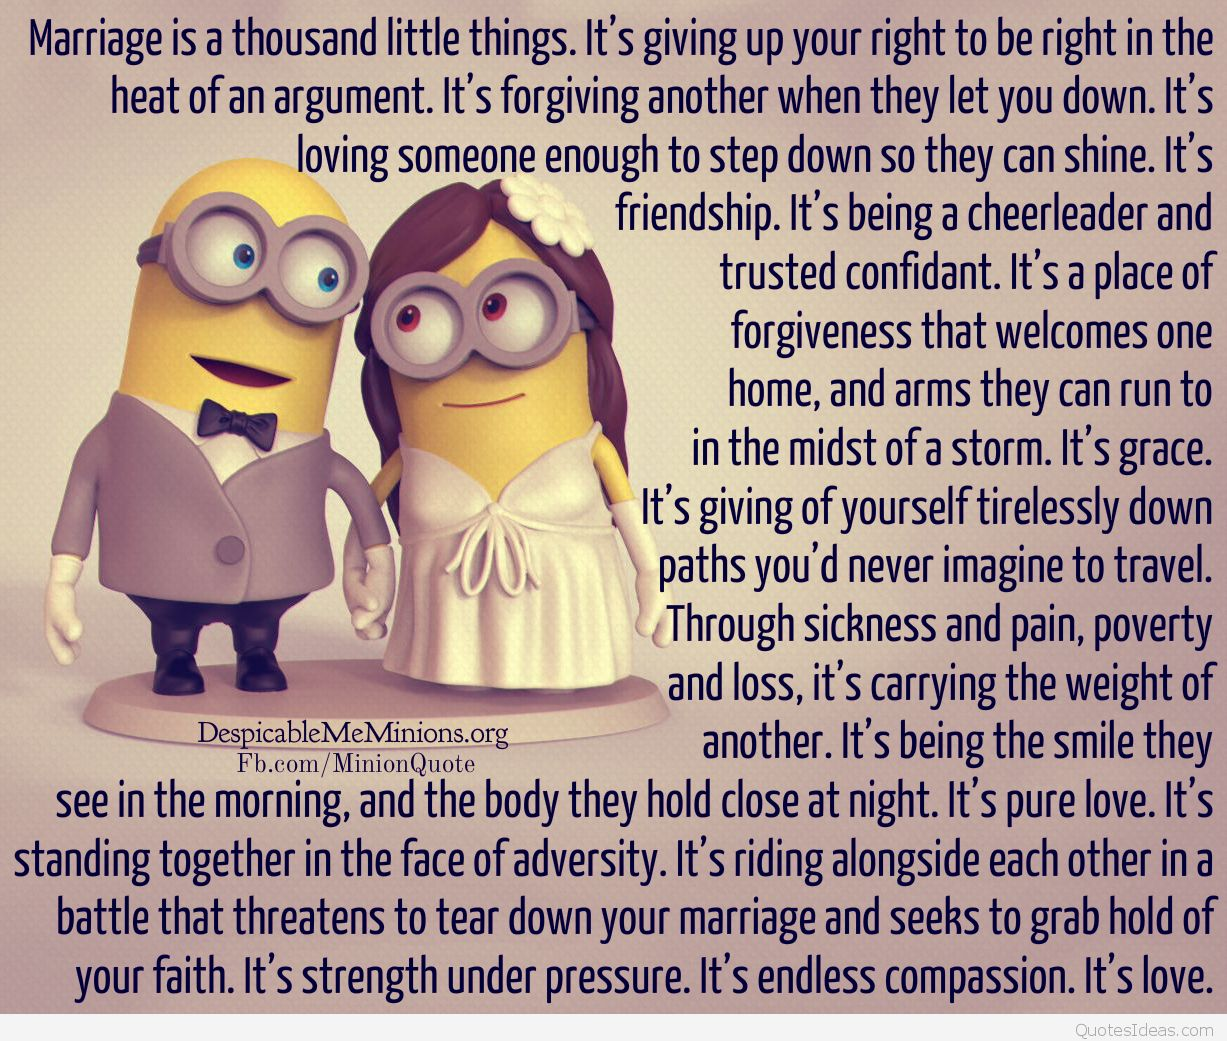 Minion-Quotes-Marriage-is-a-thousand-little-things